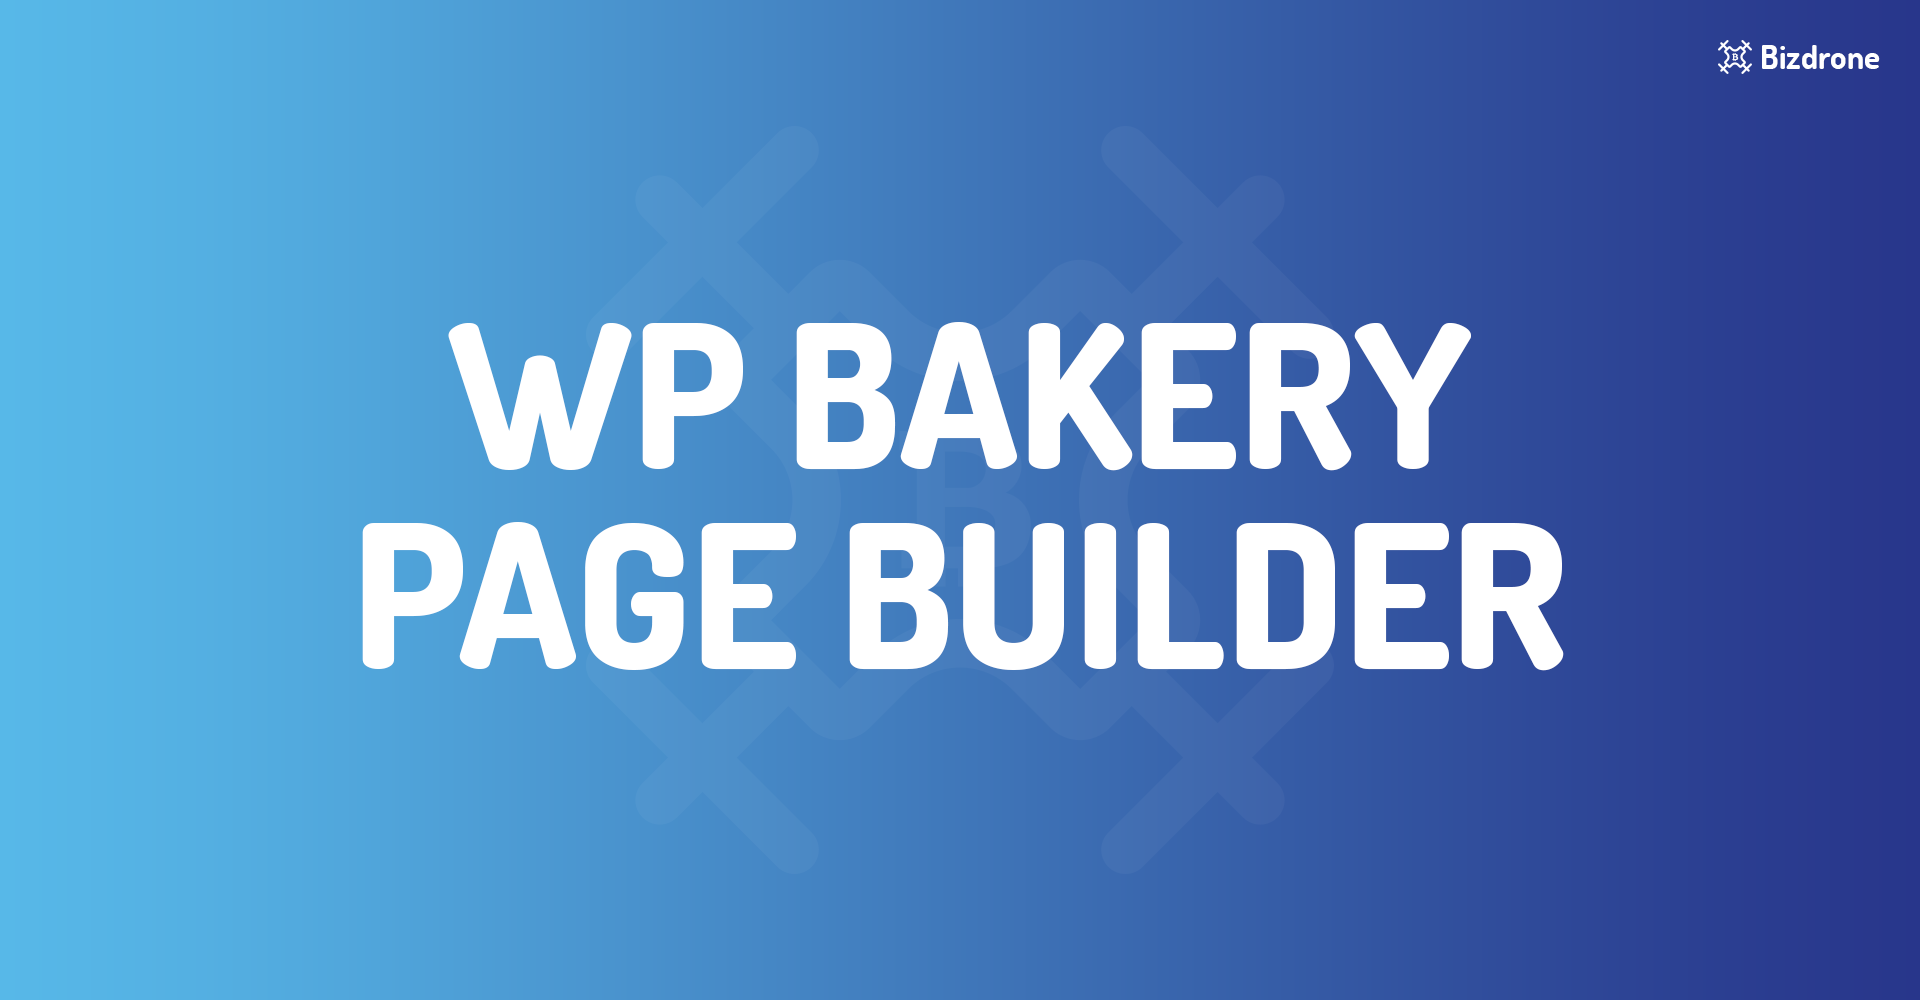 WPBakery Page Builder | | Bizdrone Documentation